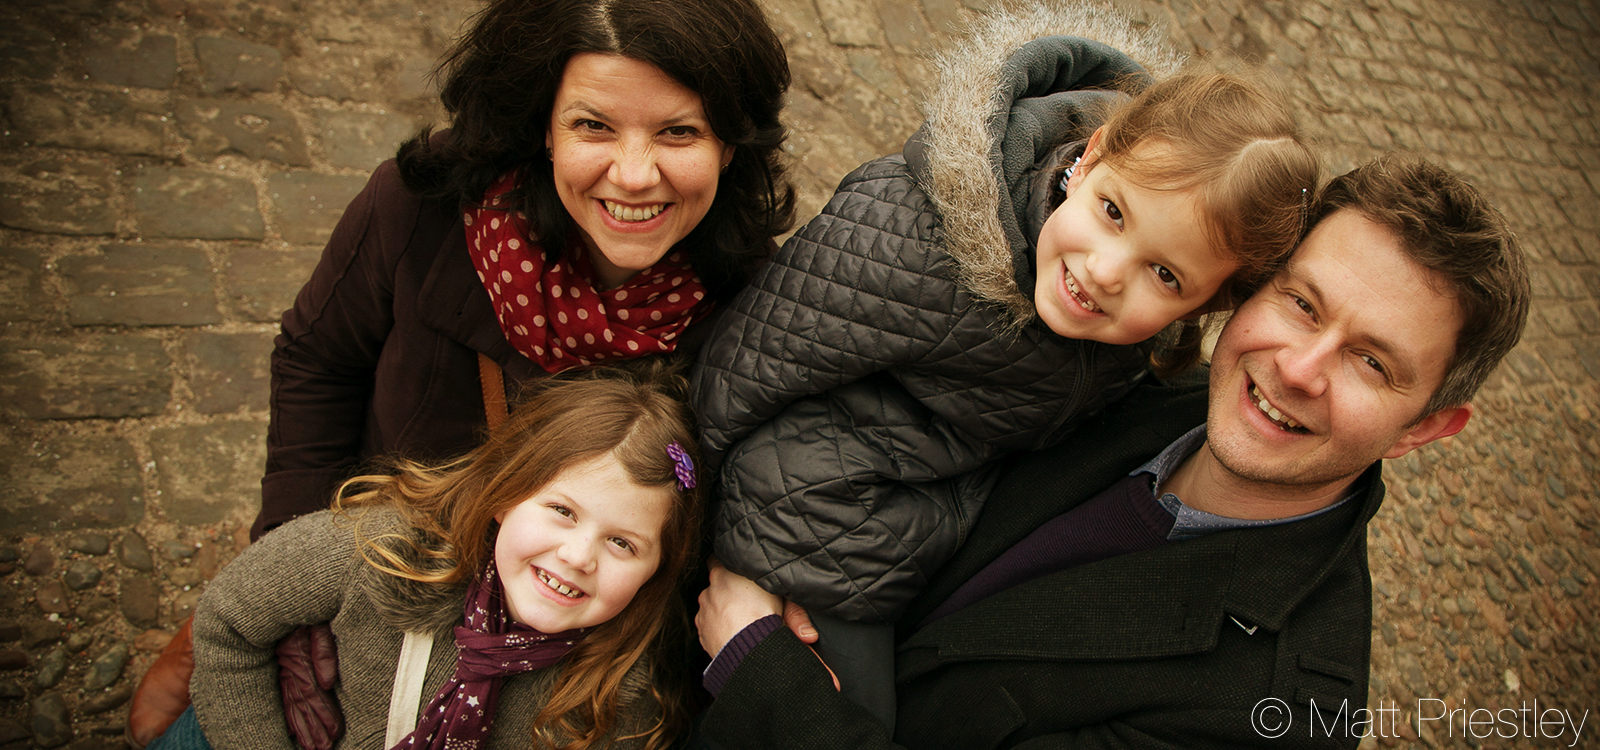 Family-portrait-photography-nr-Altrincham-by-local-photographer-Matt-Priiestley-24